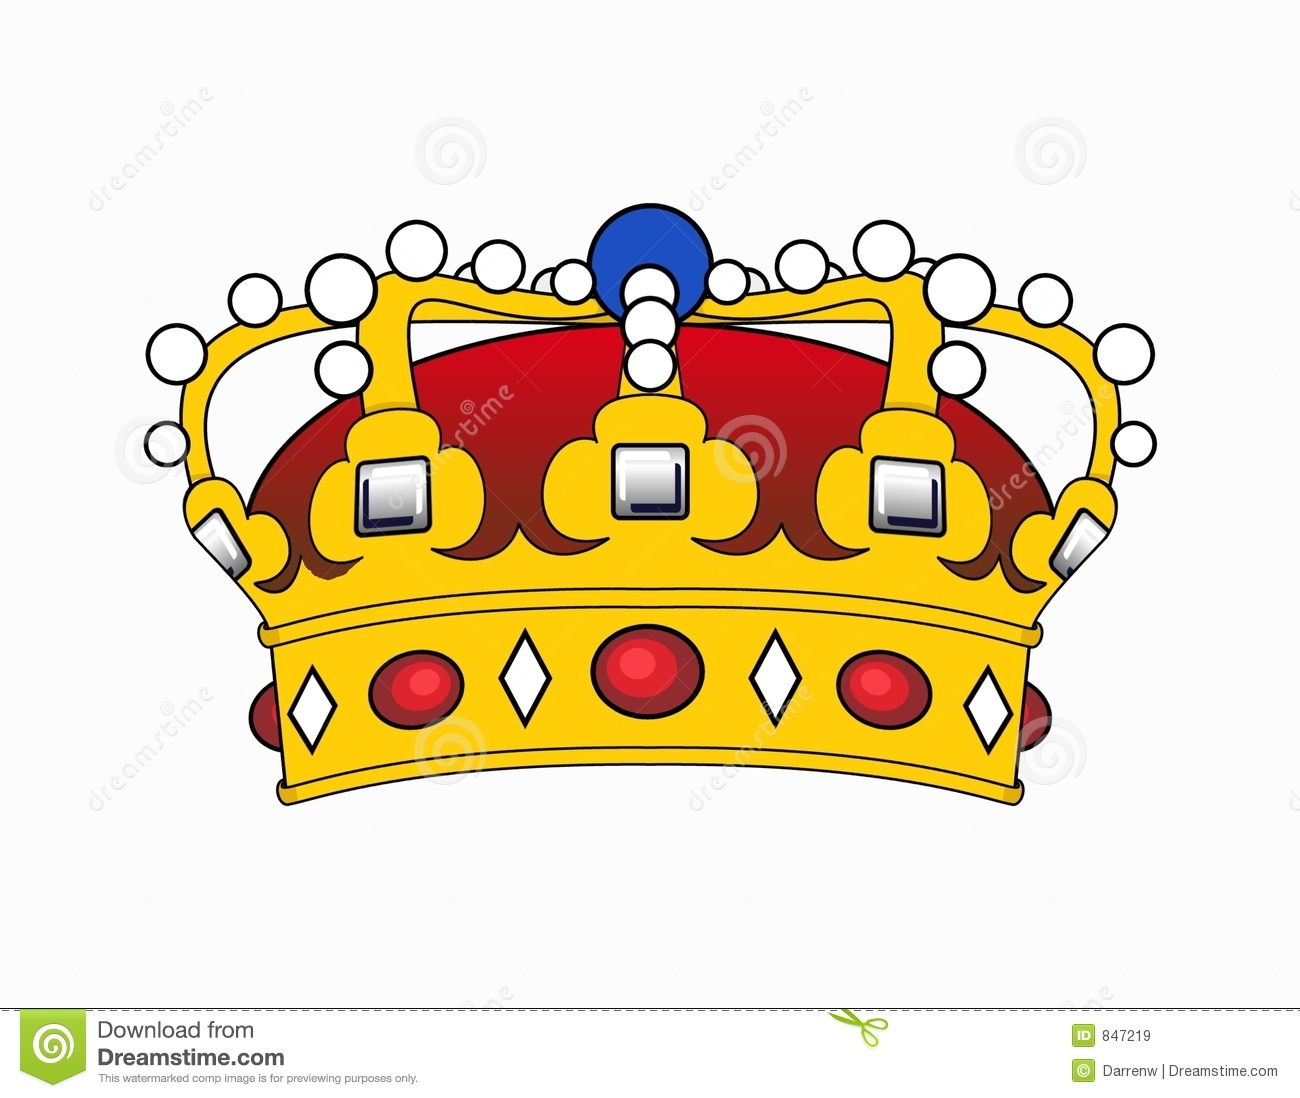 Crown Jewels Clipart They are often used for the coronation of a monarch and a few other ceremonial occasions. crown jewels clipart